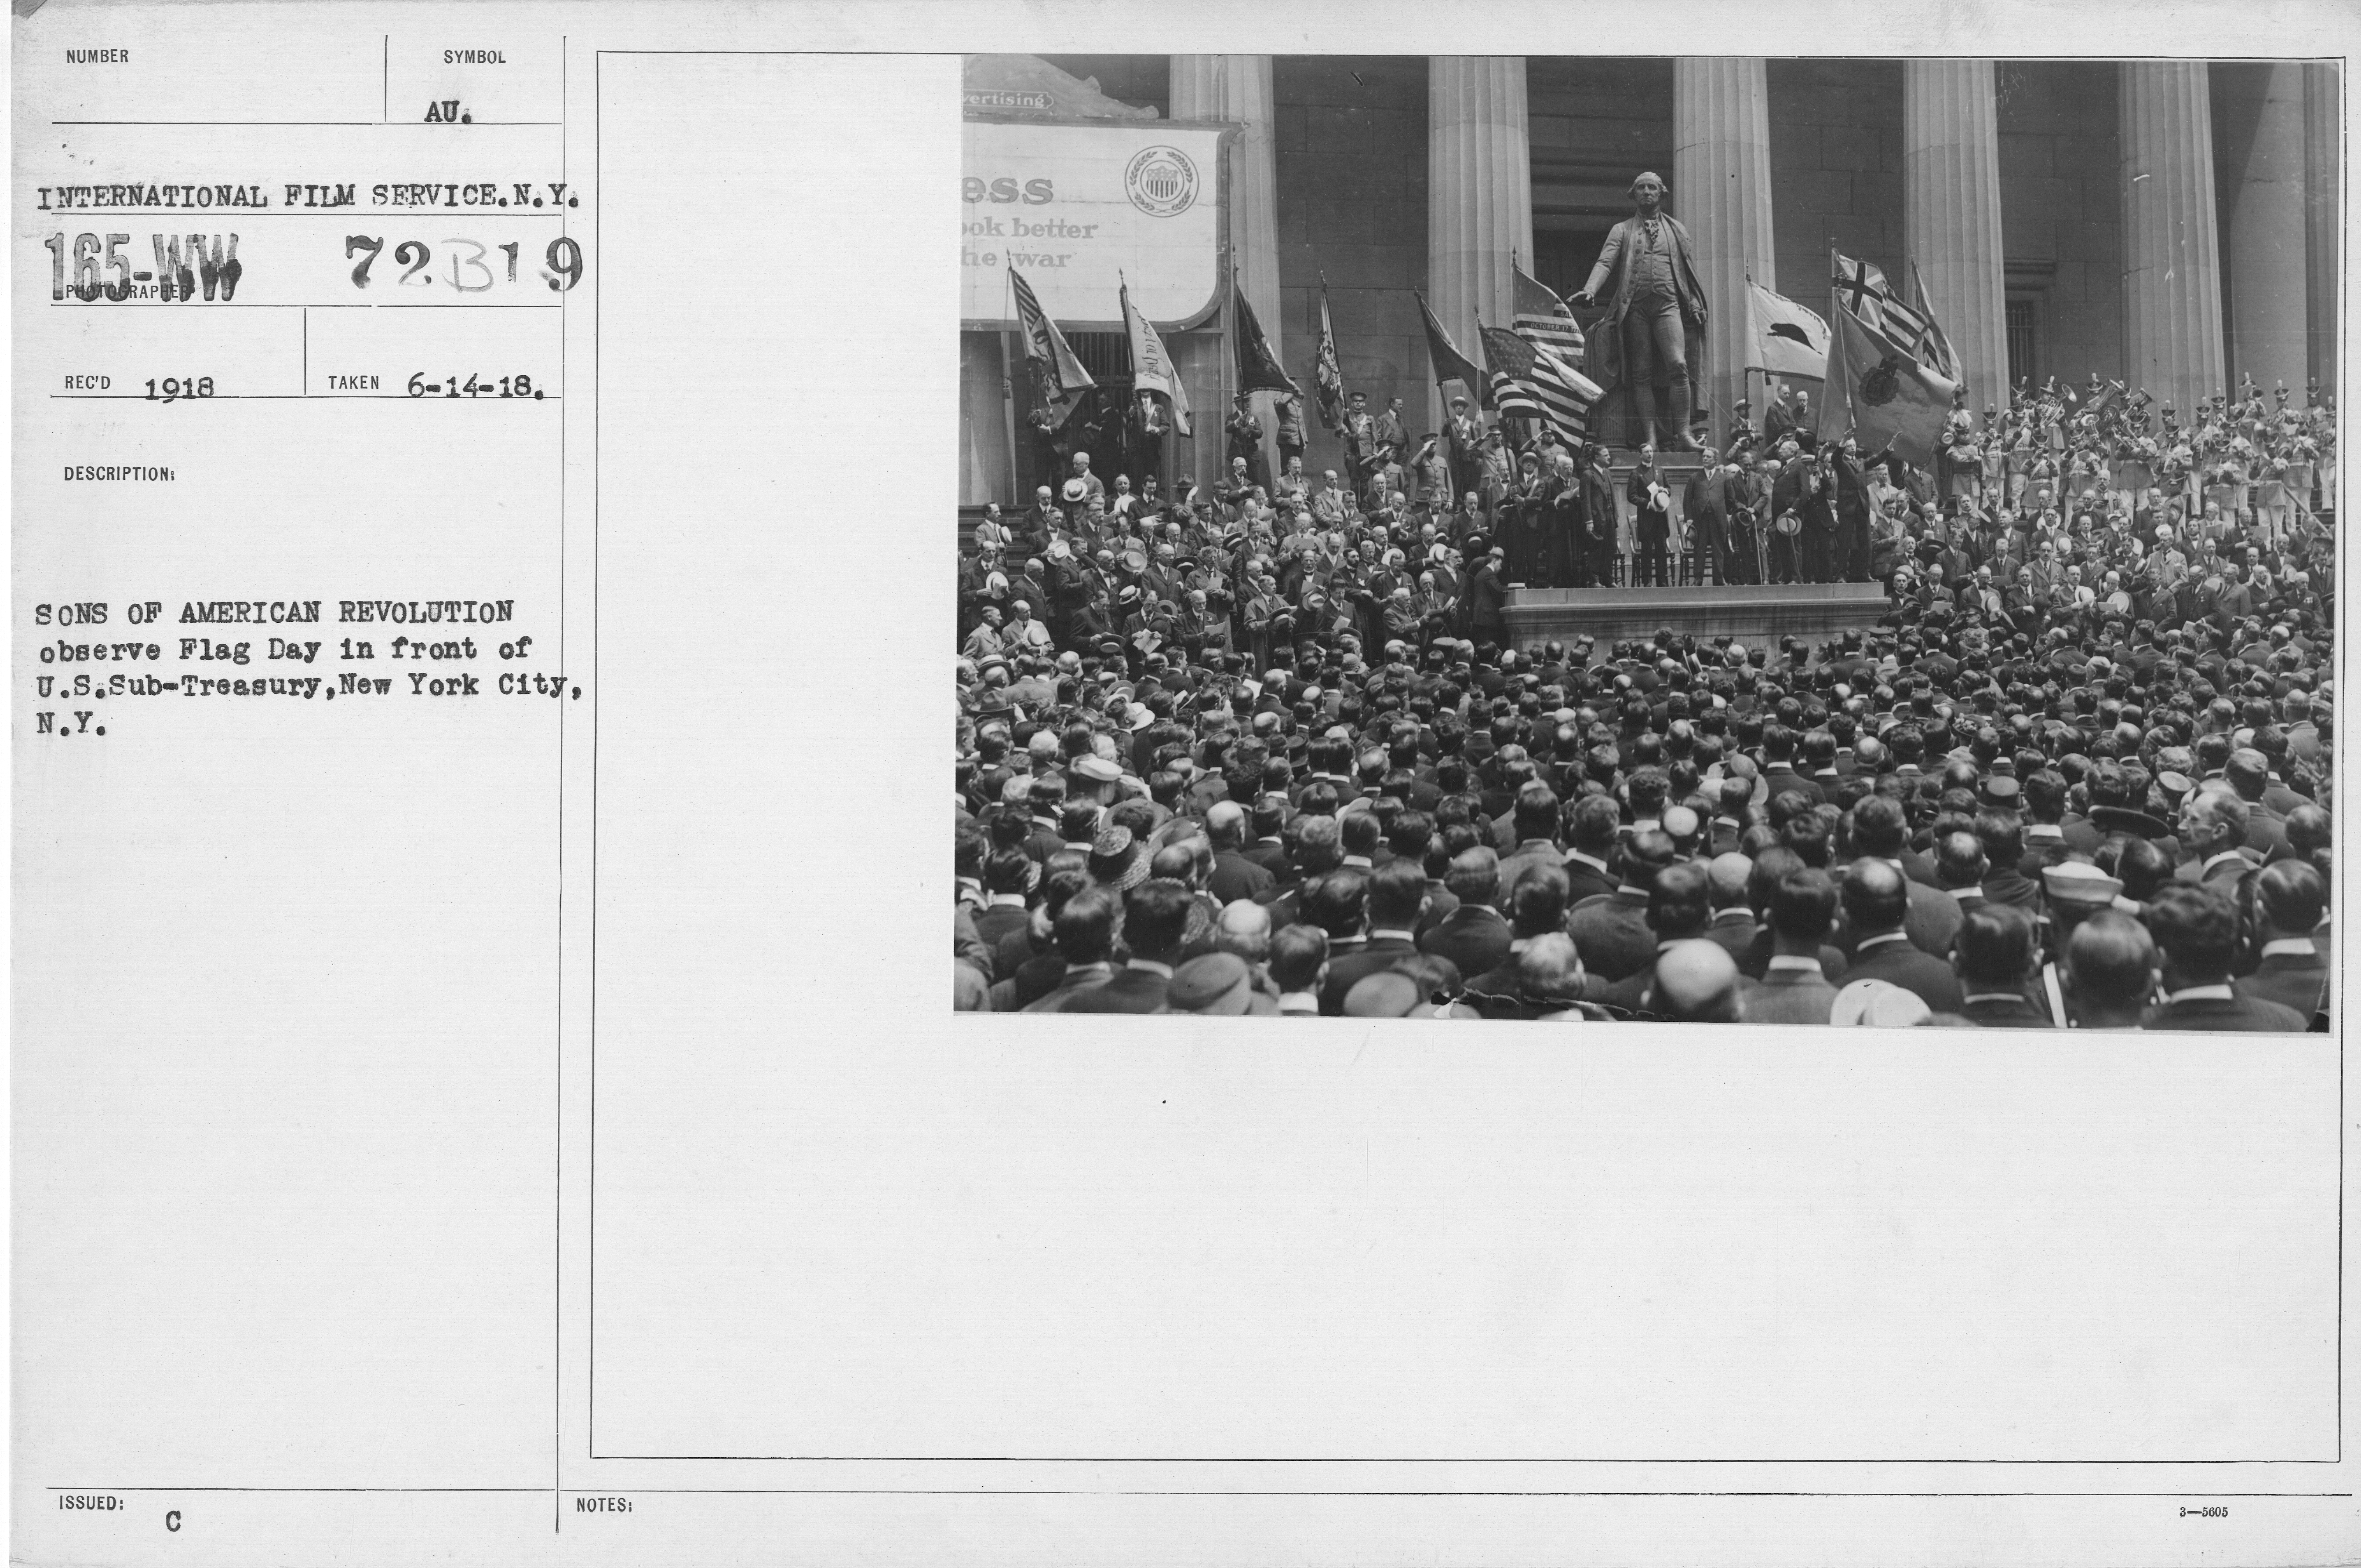 File:Ceremonies - Flag Day, 1918 - Sons of American